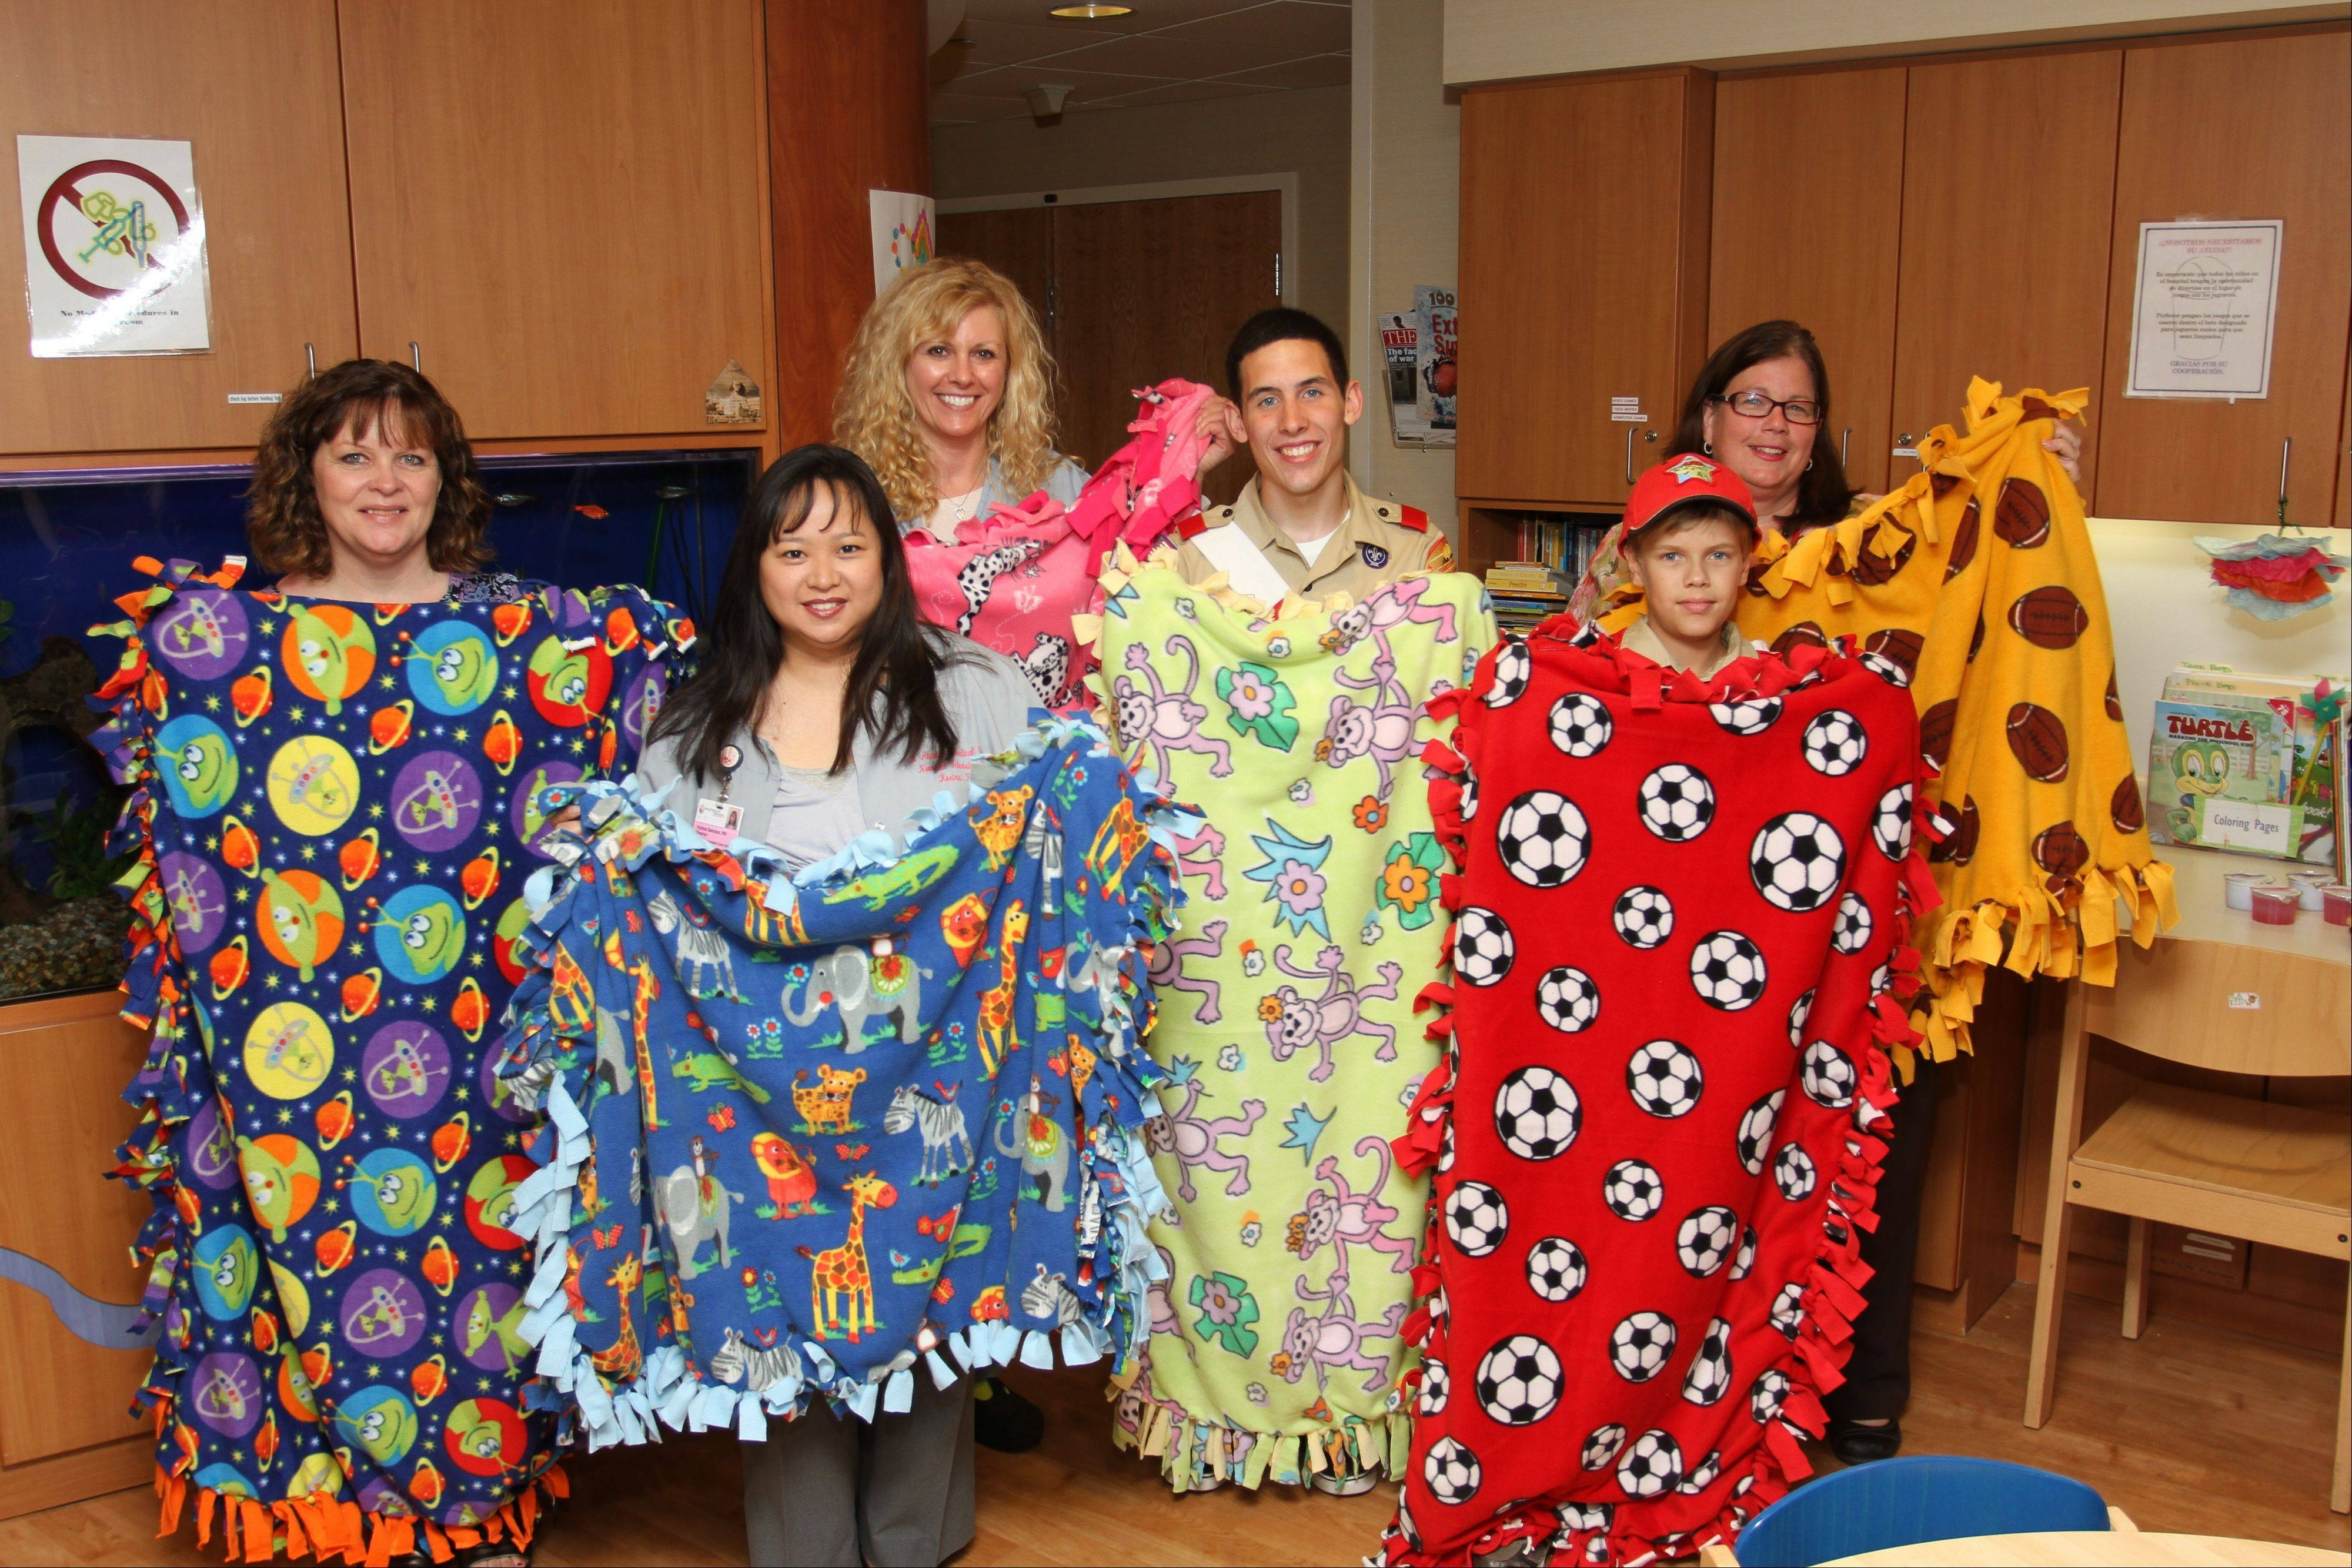 As his Eagle Scout project, Jeffery Weaver, along with a team of volunteers, made 50 fleece blankets for the patients of St. Alexius Medical Center's Pediatric Unit.